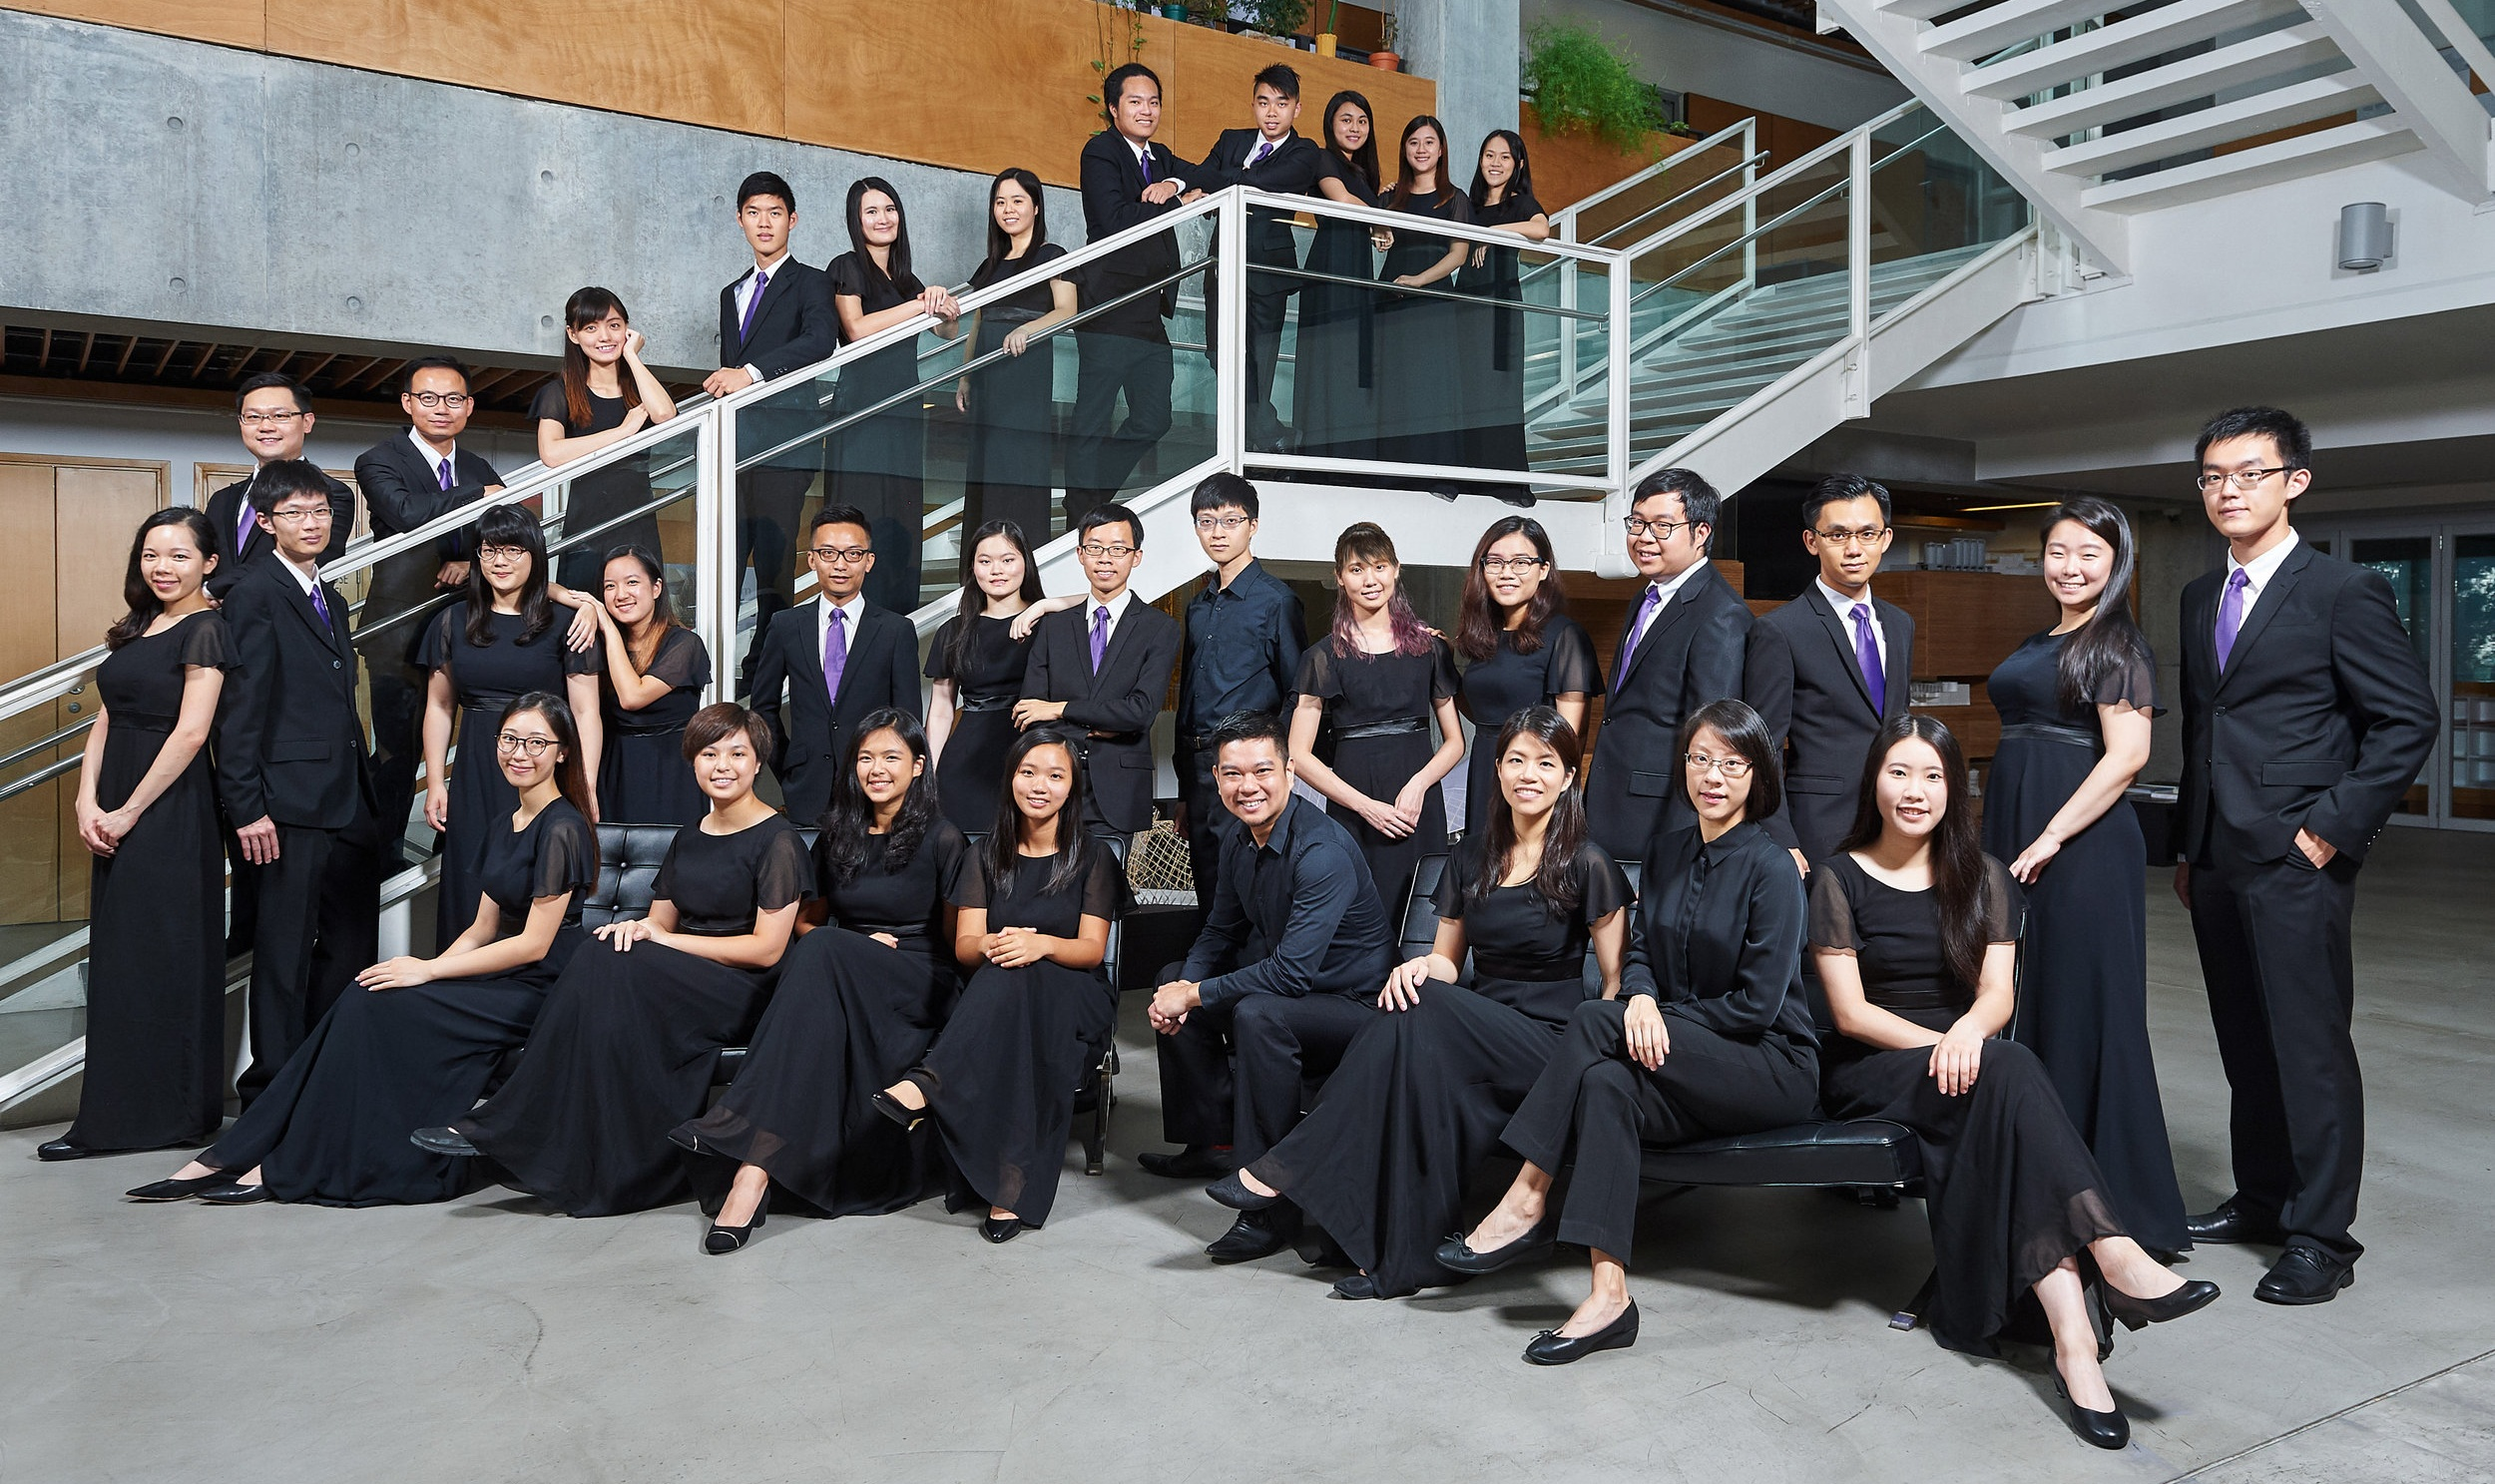 聯合演出  香港中文大學合唱團 The Chinese University of Hong Kong Chorus